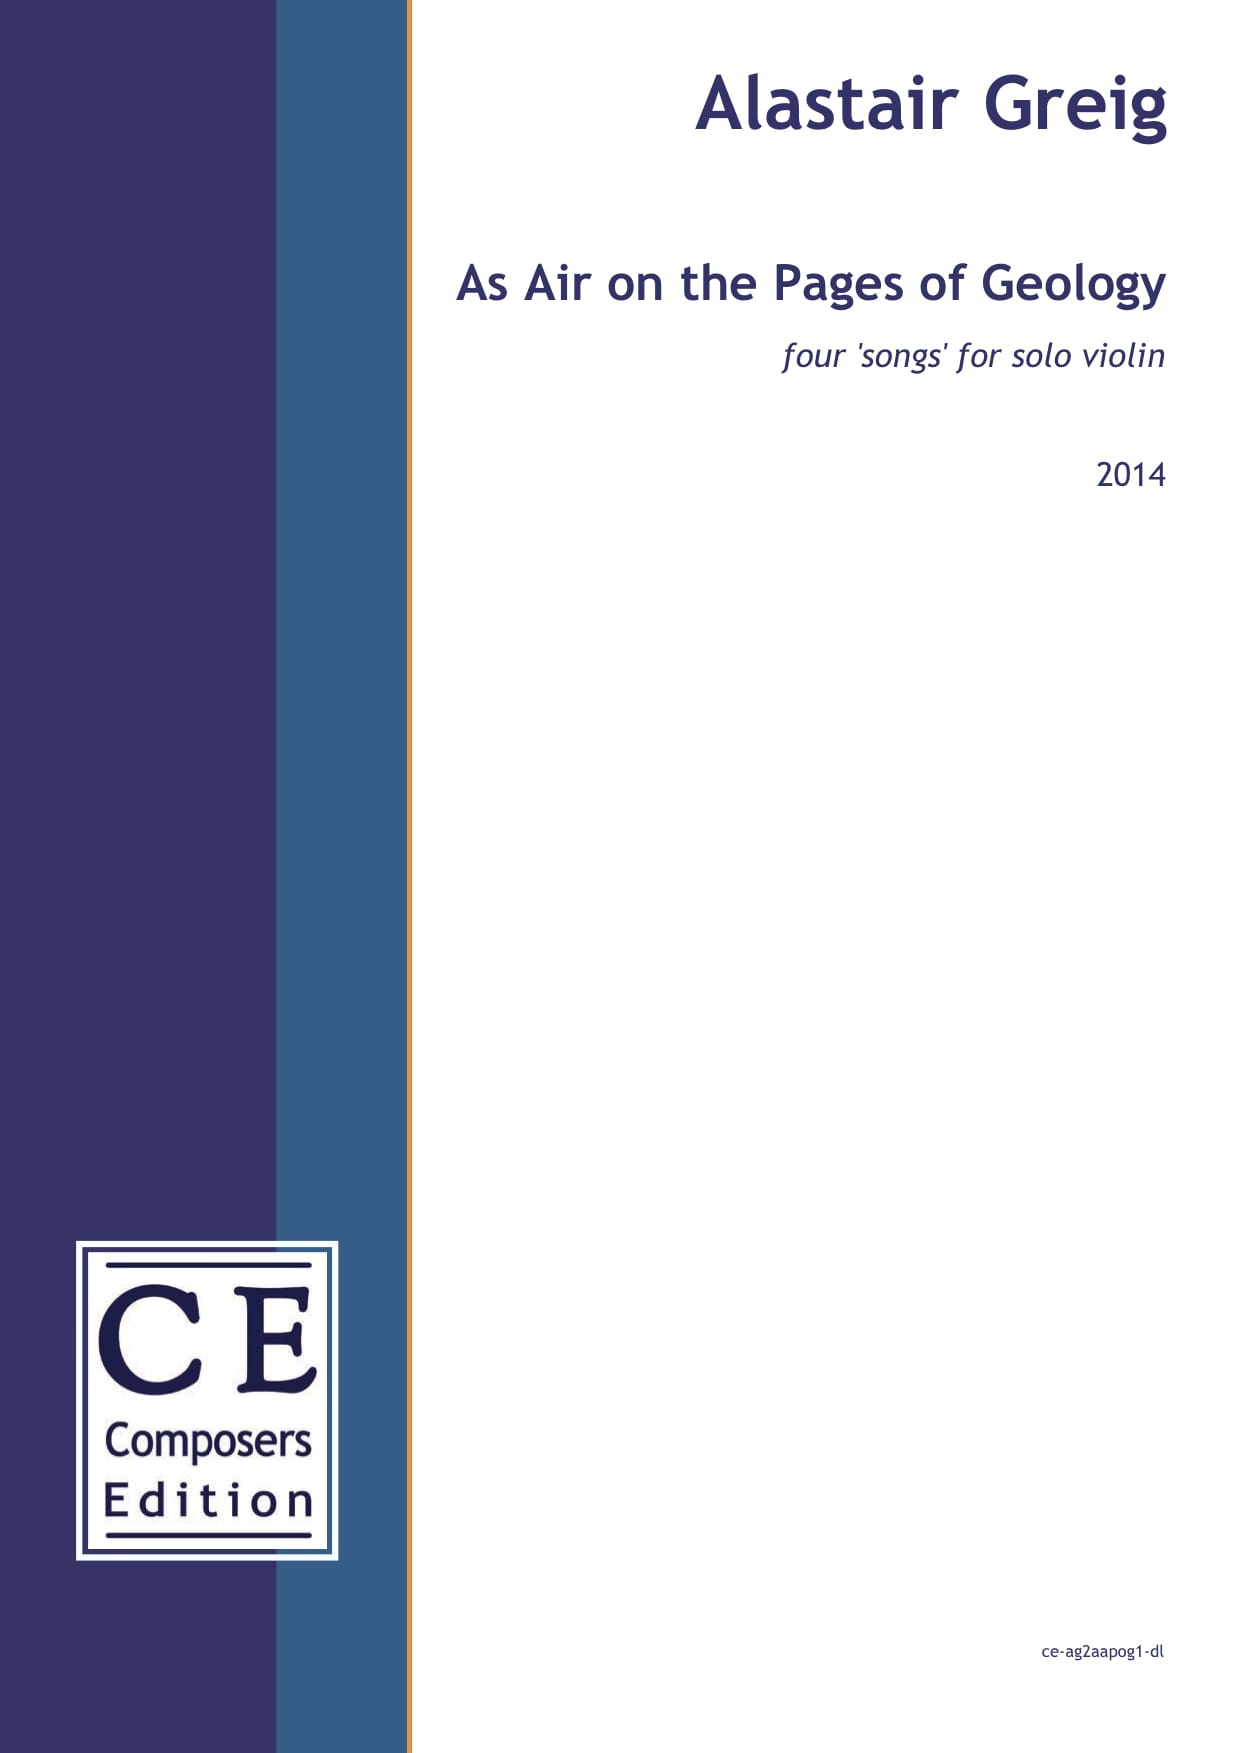 Alastair Greig: As Air on the Pages of Geology four 'songs' for solo violin